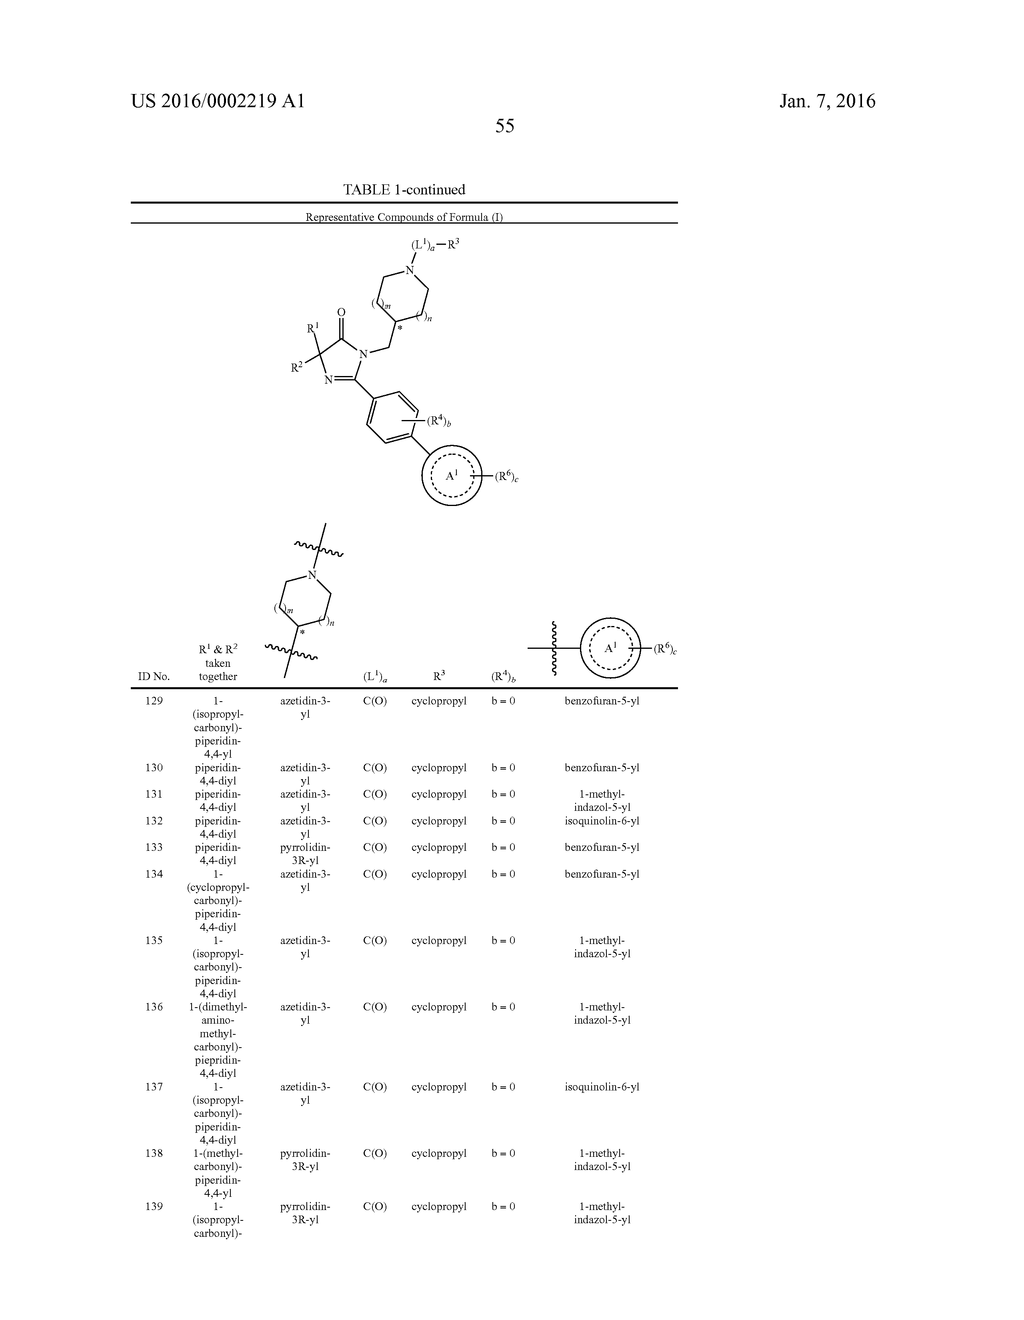 IMIDAZOLIN-5-ONE DERIVATIVE USEFUL AS FASN INHIBITORS FOR THE TREATMENT OF     CANCER - diagram, schematic, and image 56